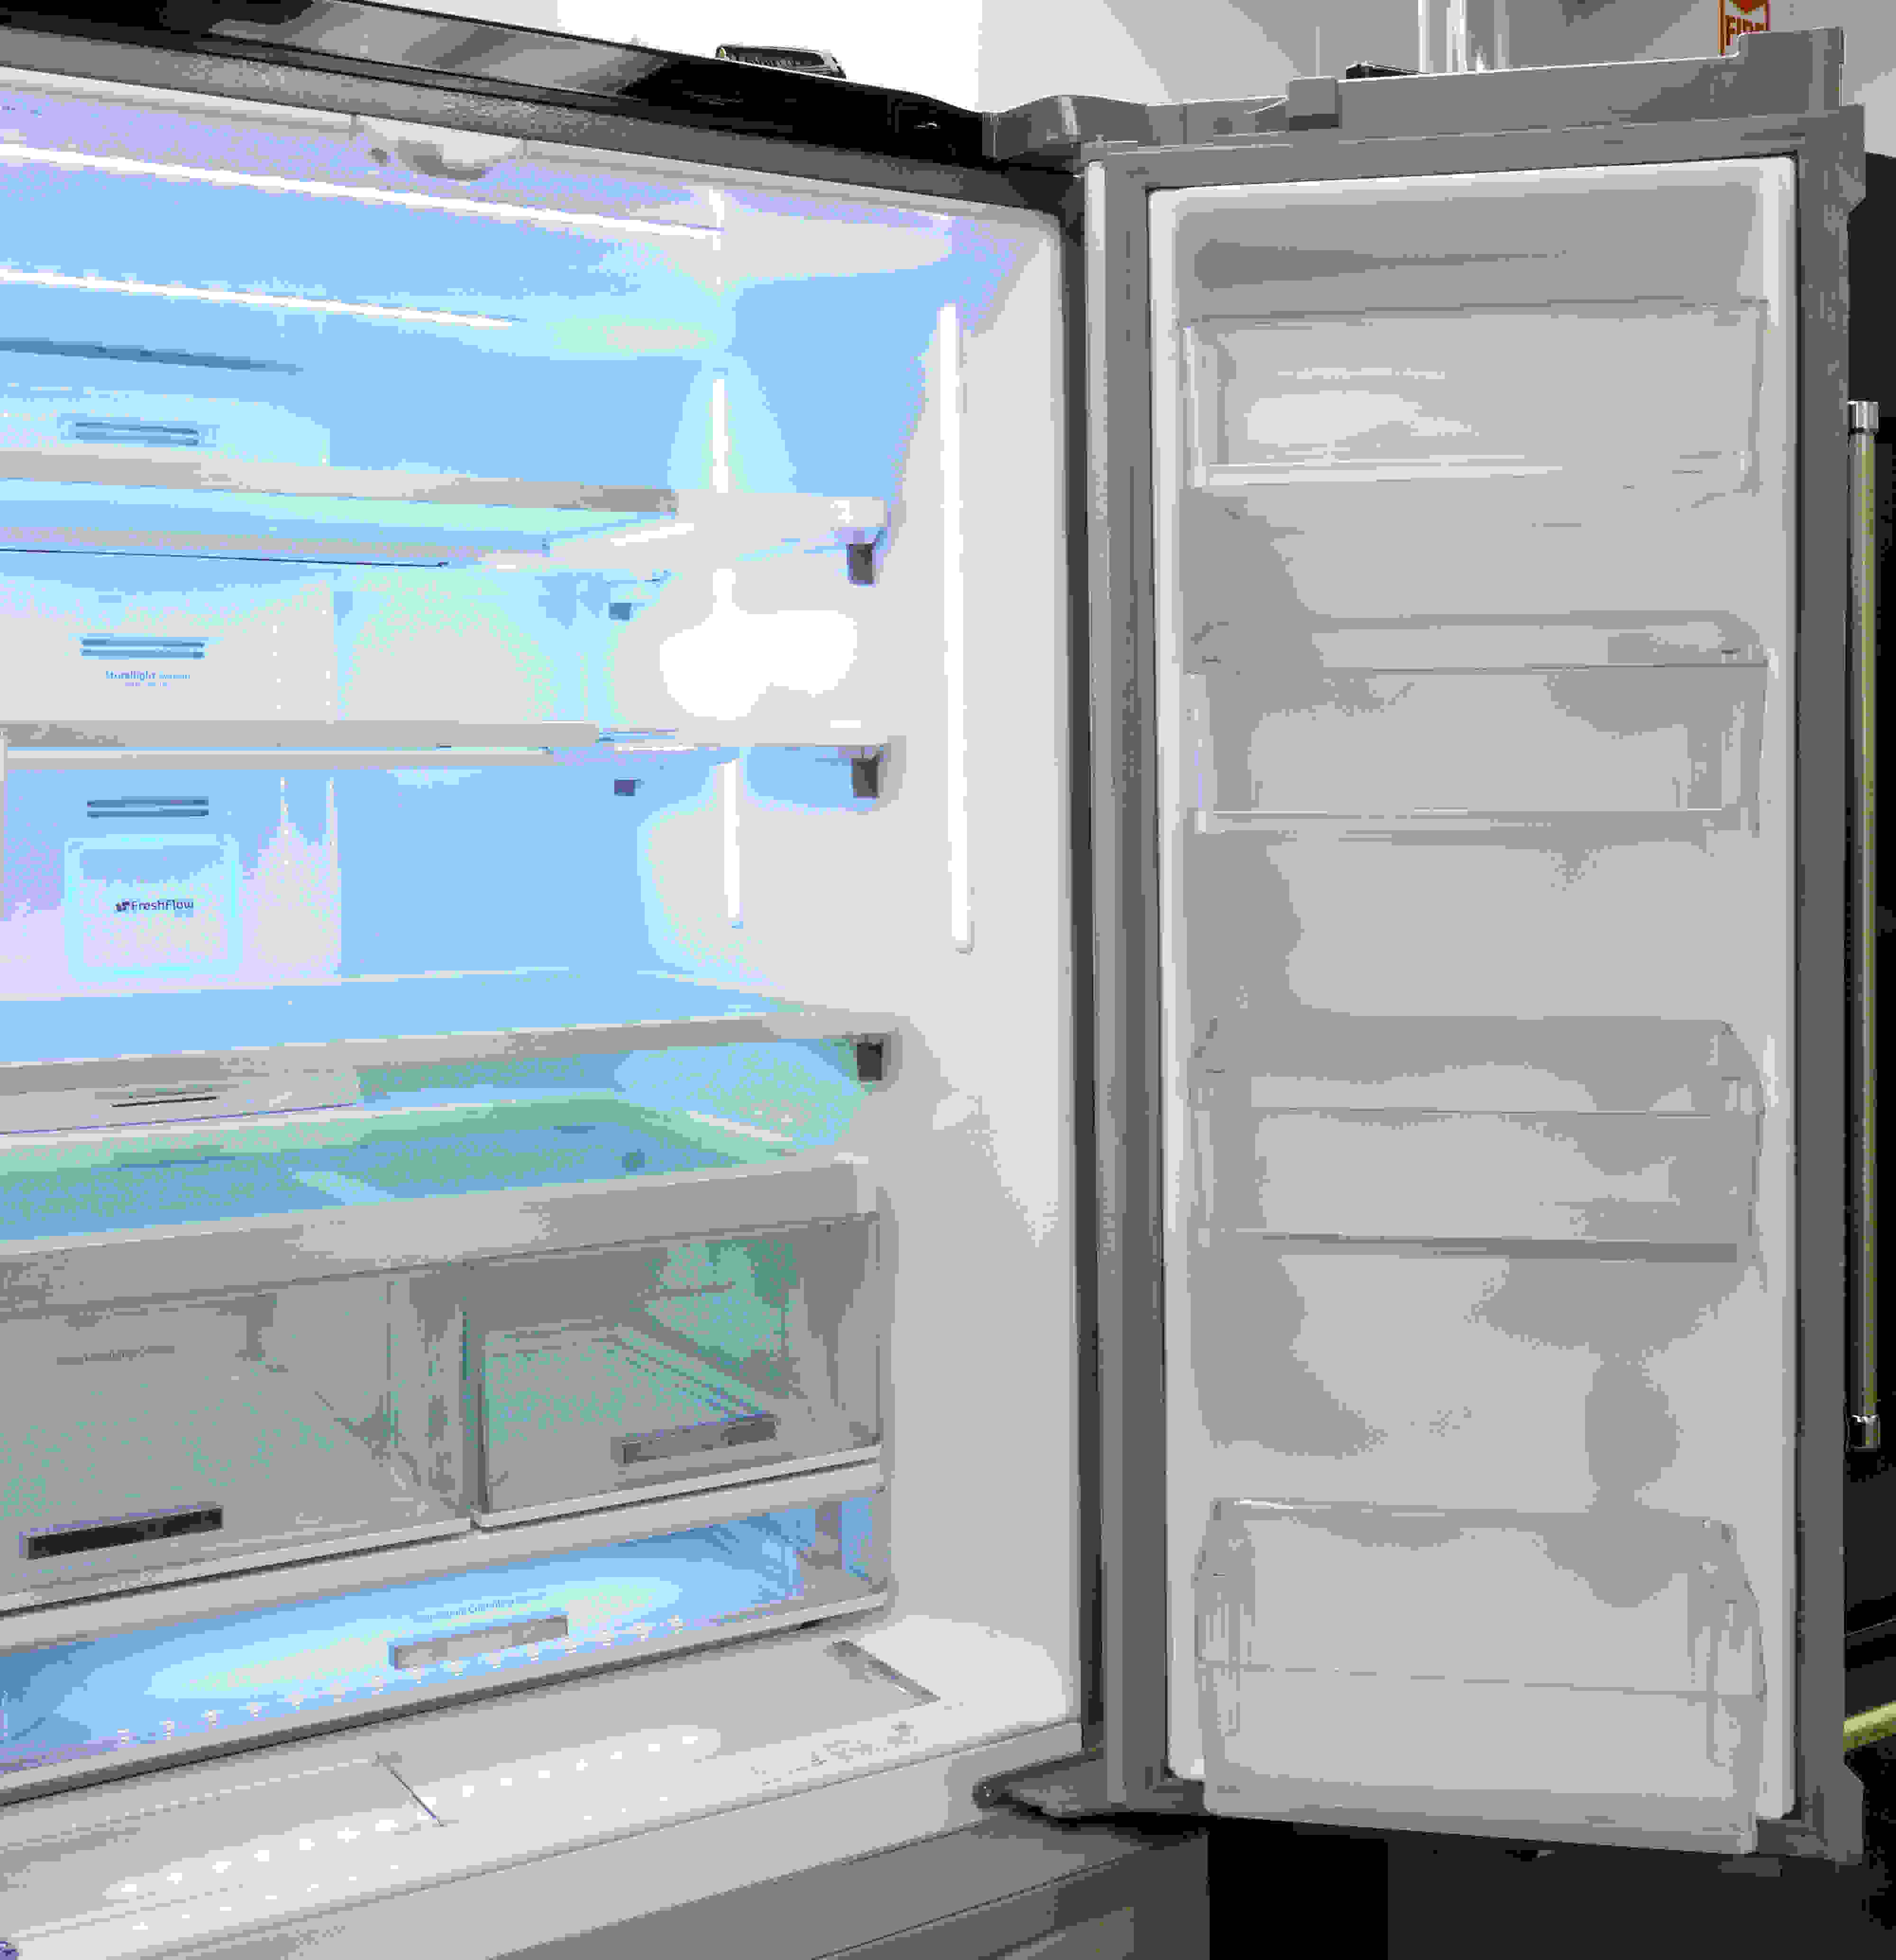 This fridge has plenty of gallon-deep door bins, but most have so little vertical clearance that they might not be useful for storing large items.